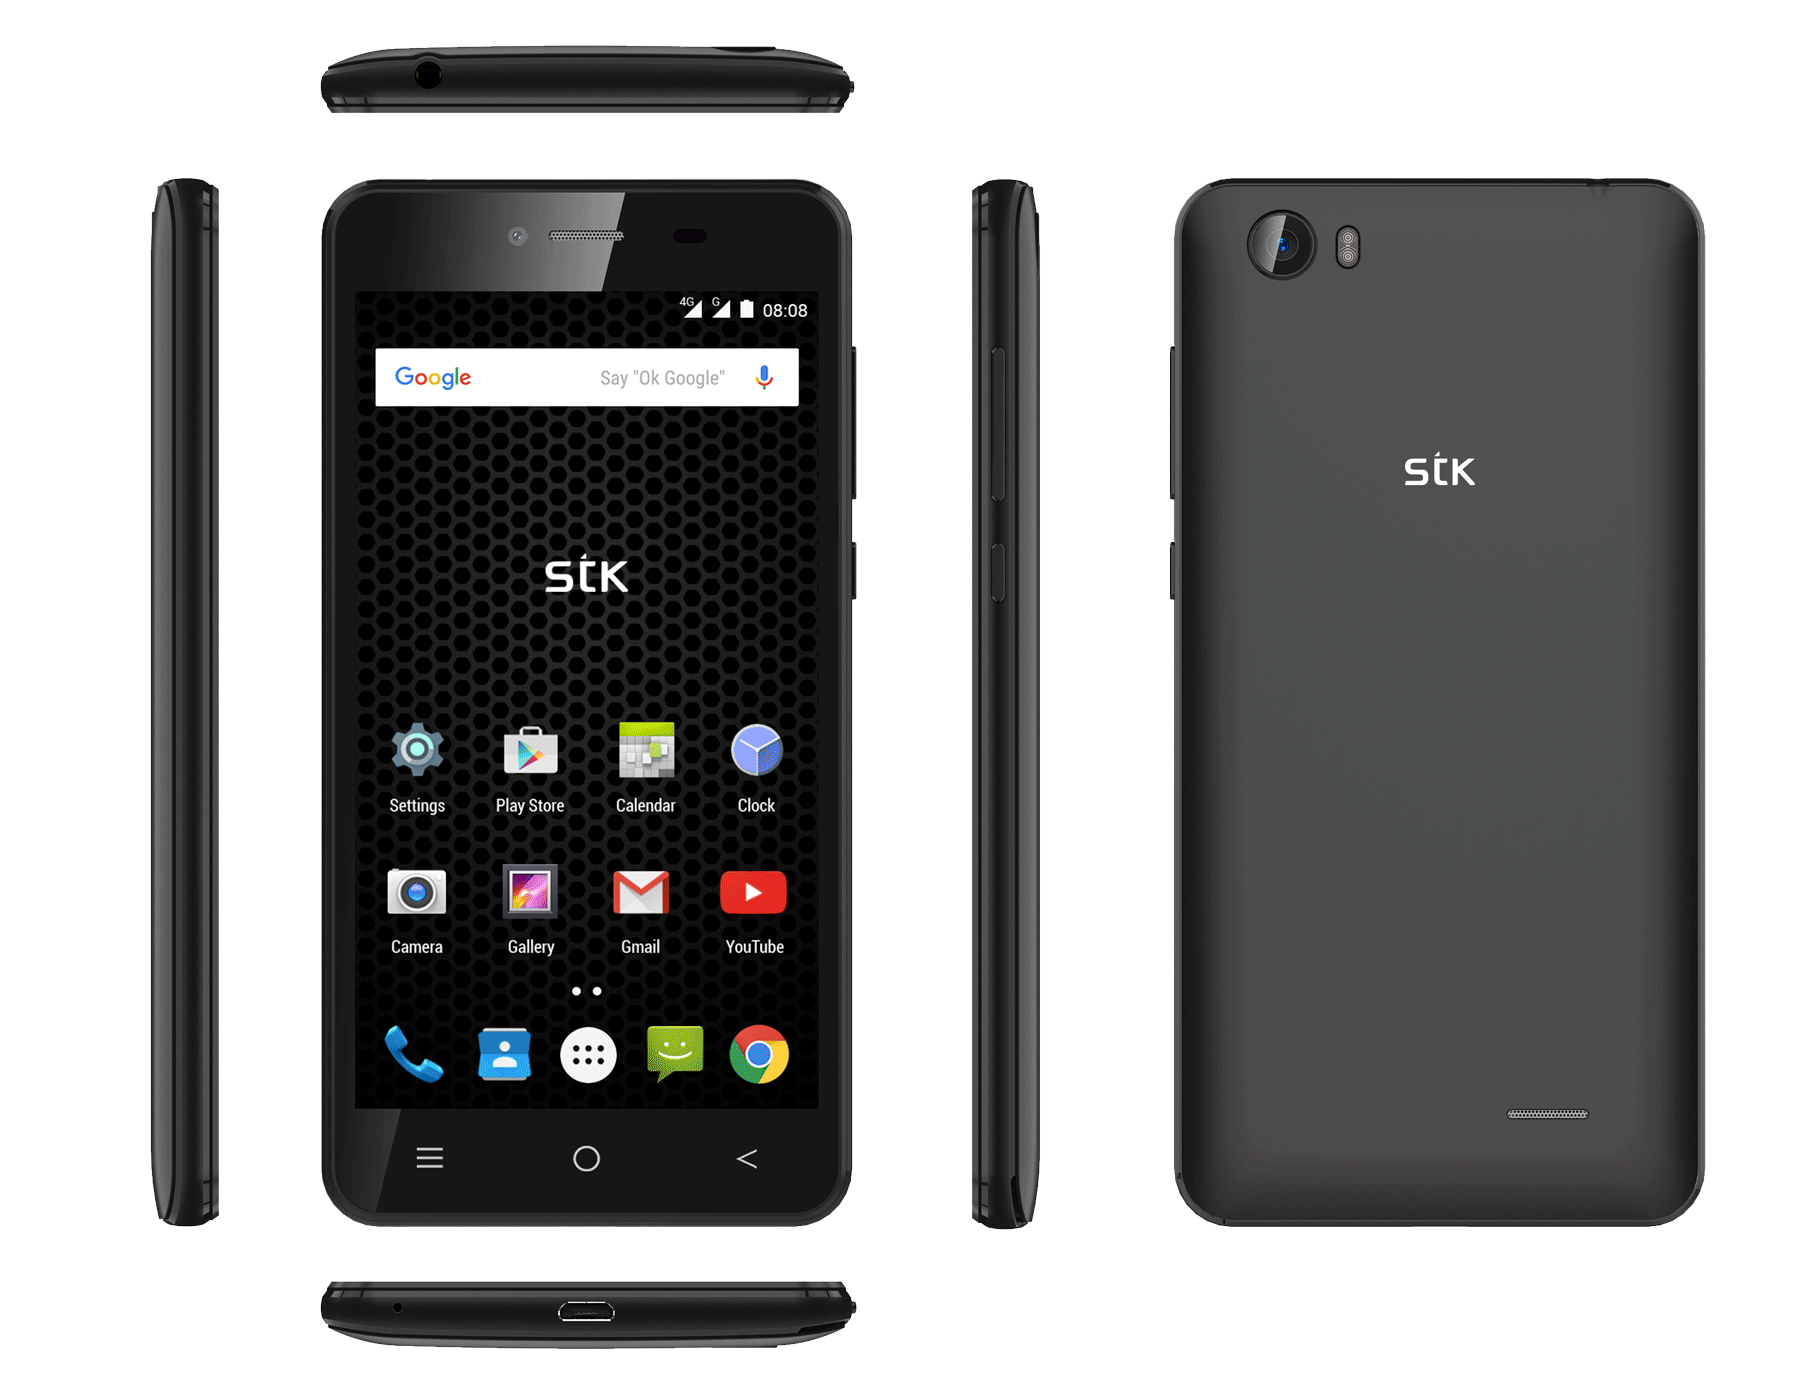 Stk Smartphone Distributors Into Africa 3g Mobile